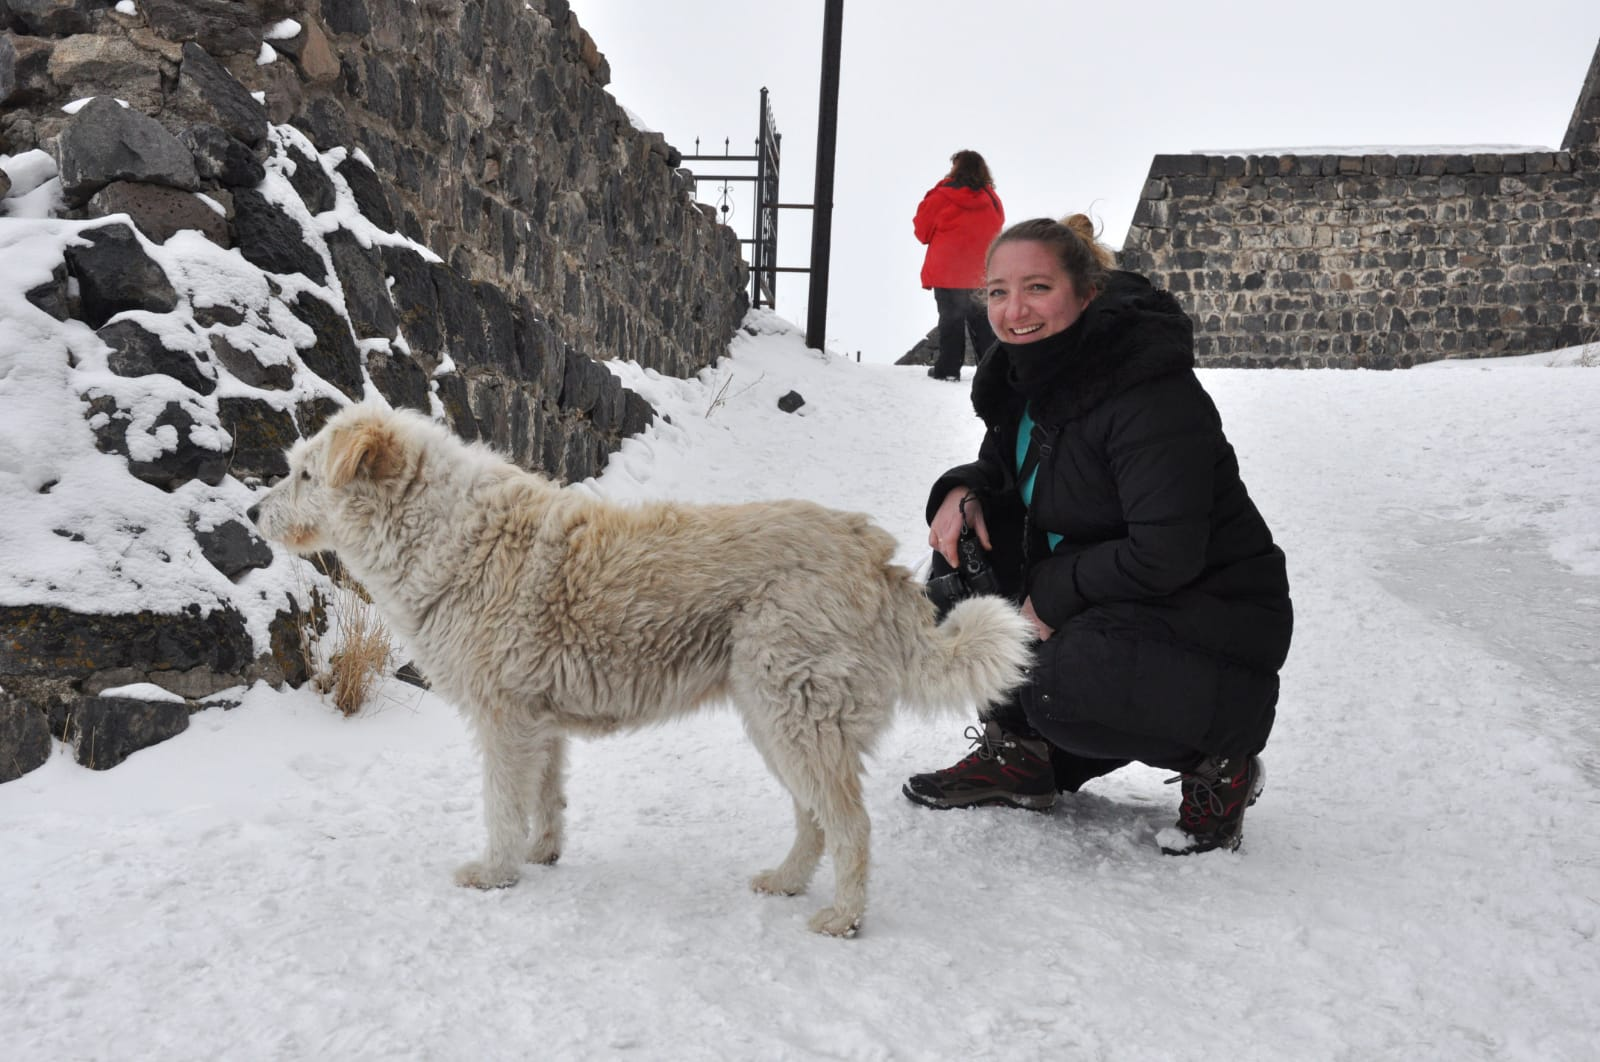 At the top of the Kars Castle